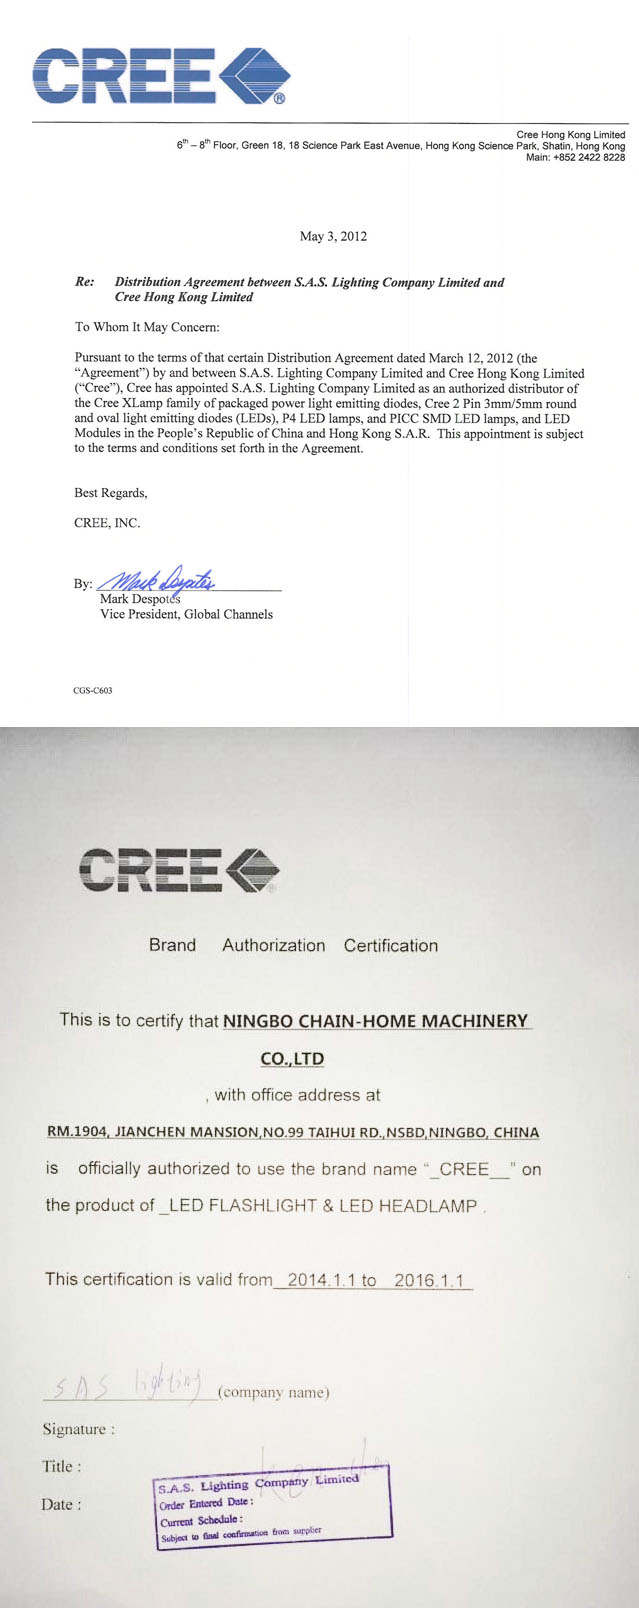 CREE LED Authorization Certification